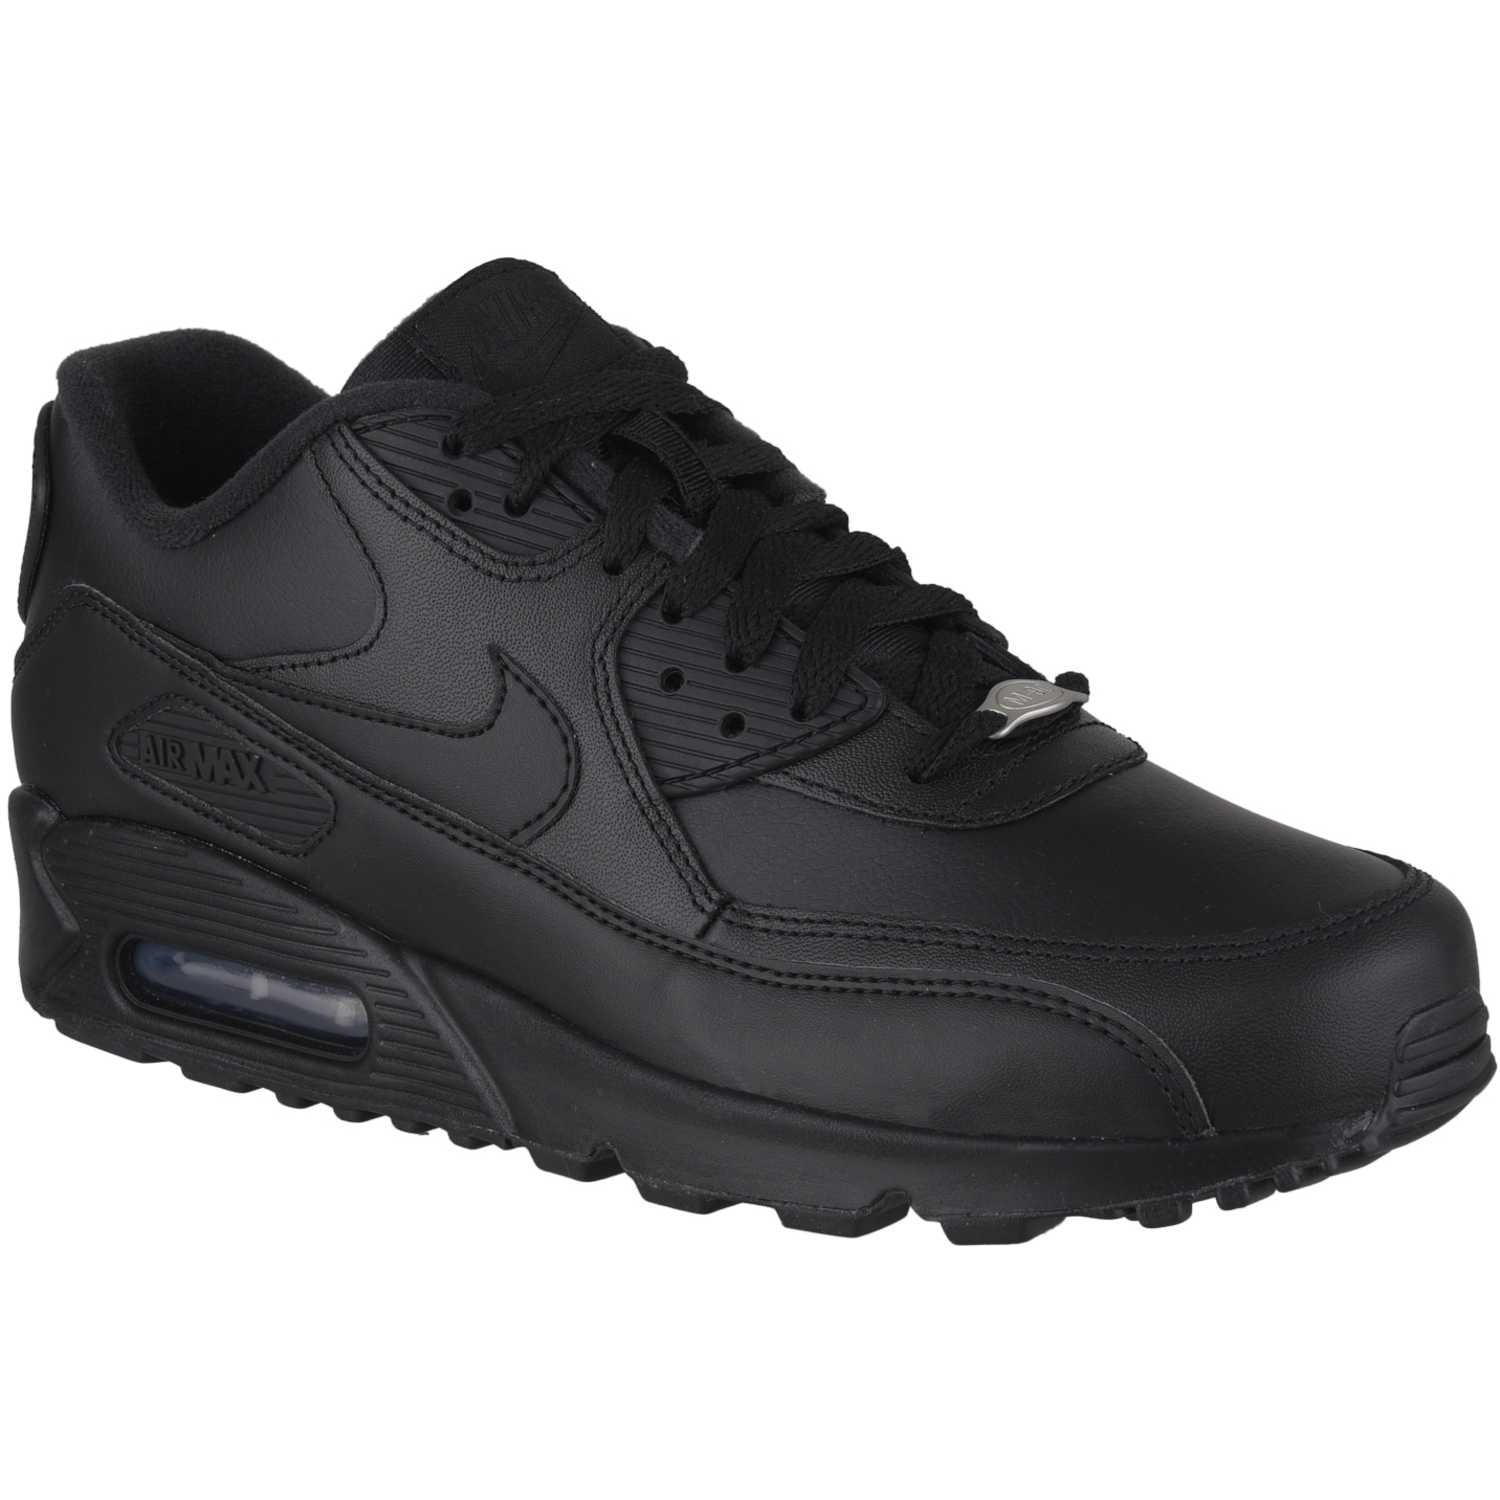 quality design d133e 71ef7 Zapatilla de Hombre Nike Negro / Negro air max 90 leather ...